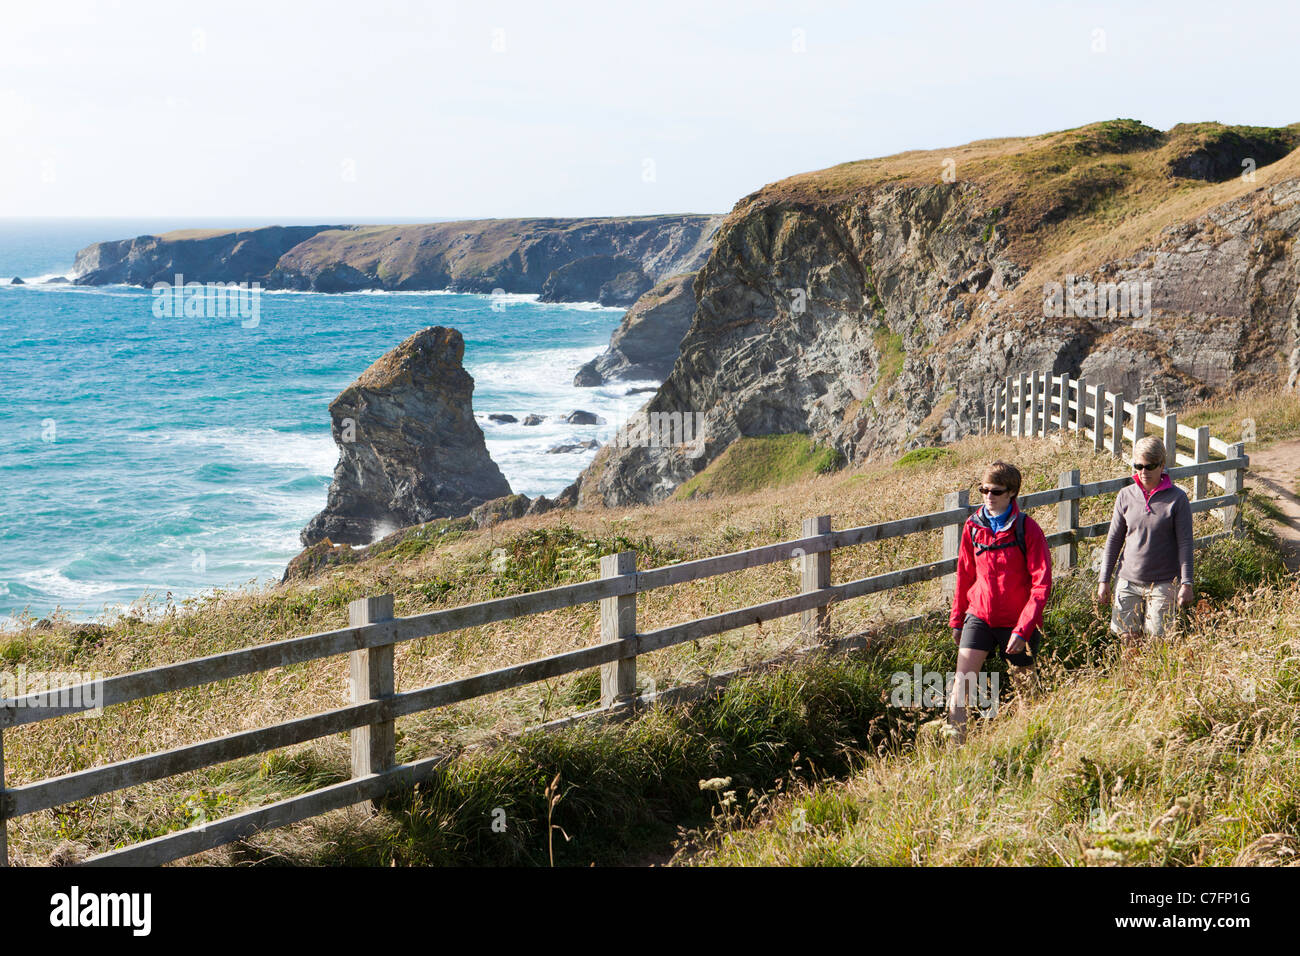 Walkers on the South West Coast Path National Trail at Bedruthan Steps on the west Cornish coast near Bedruthan, - Stock Image